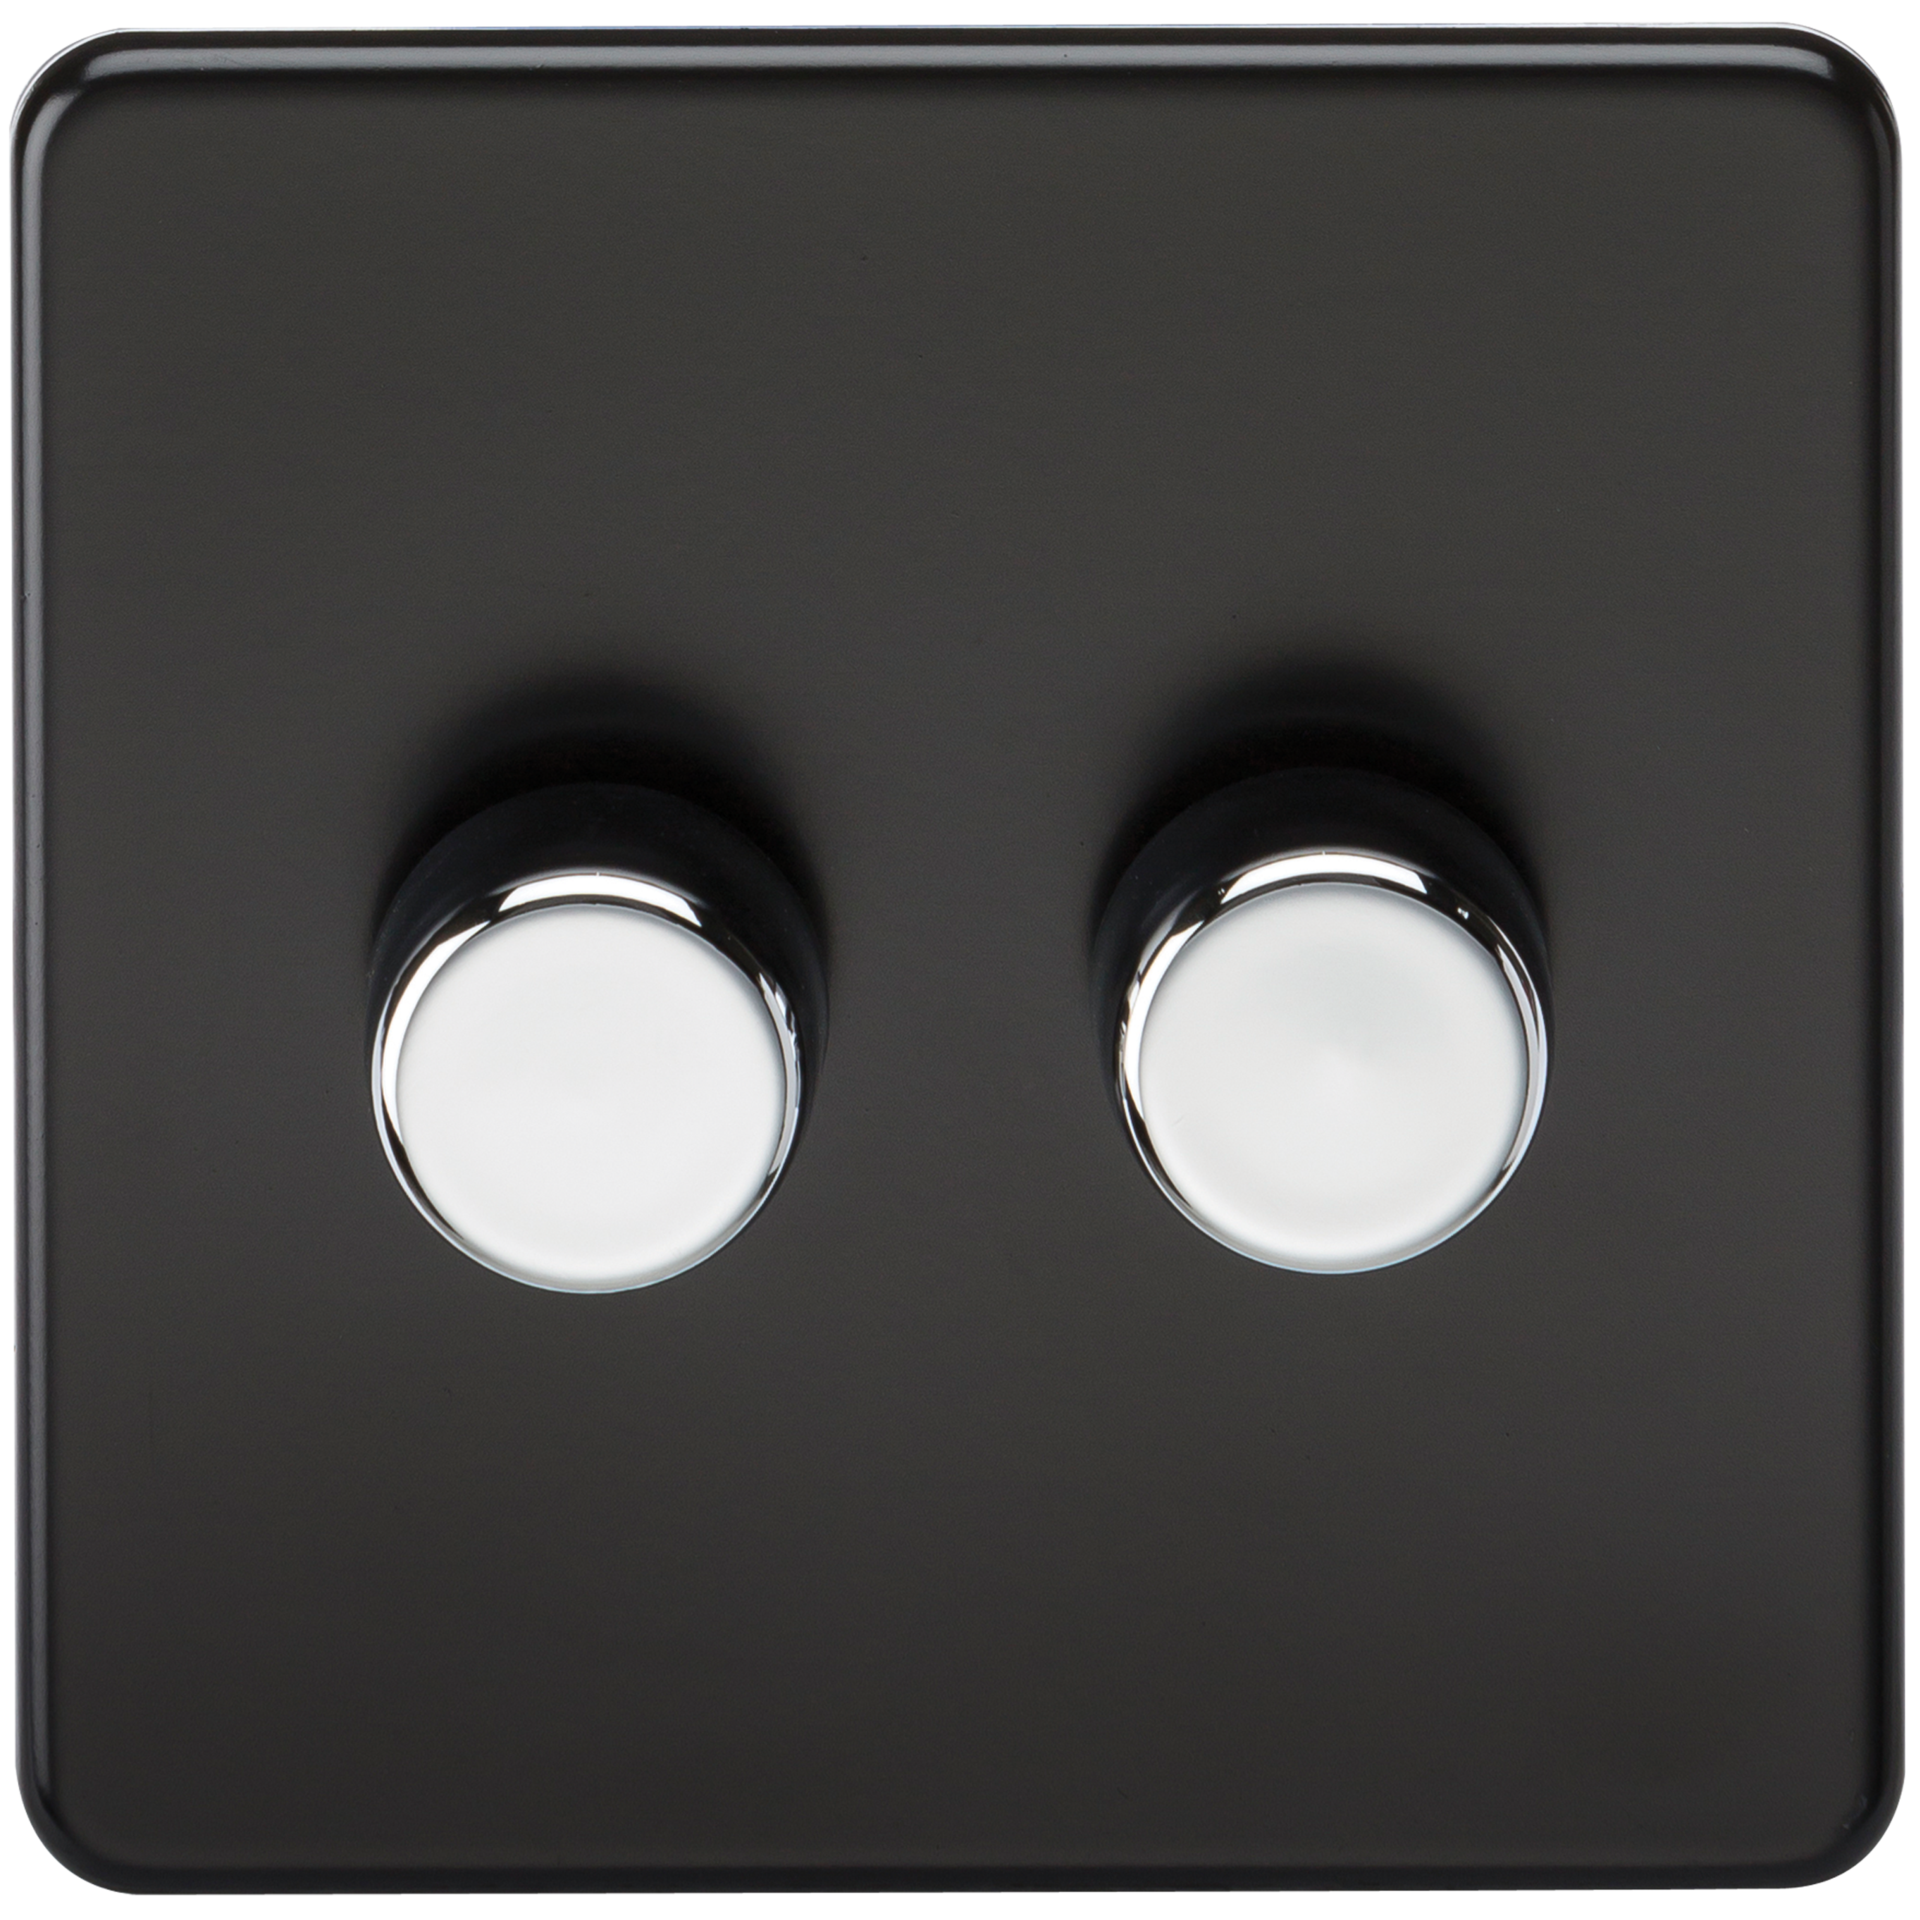 SCREWLESS 2G 2 WAY 40-400W DIMMER SWITCH - MATT BLACK